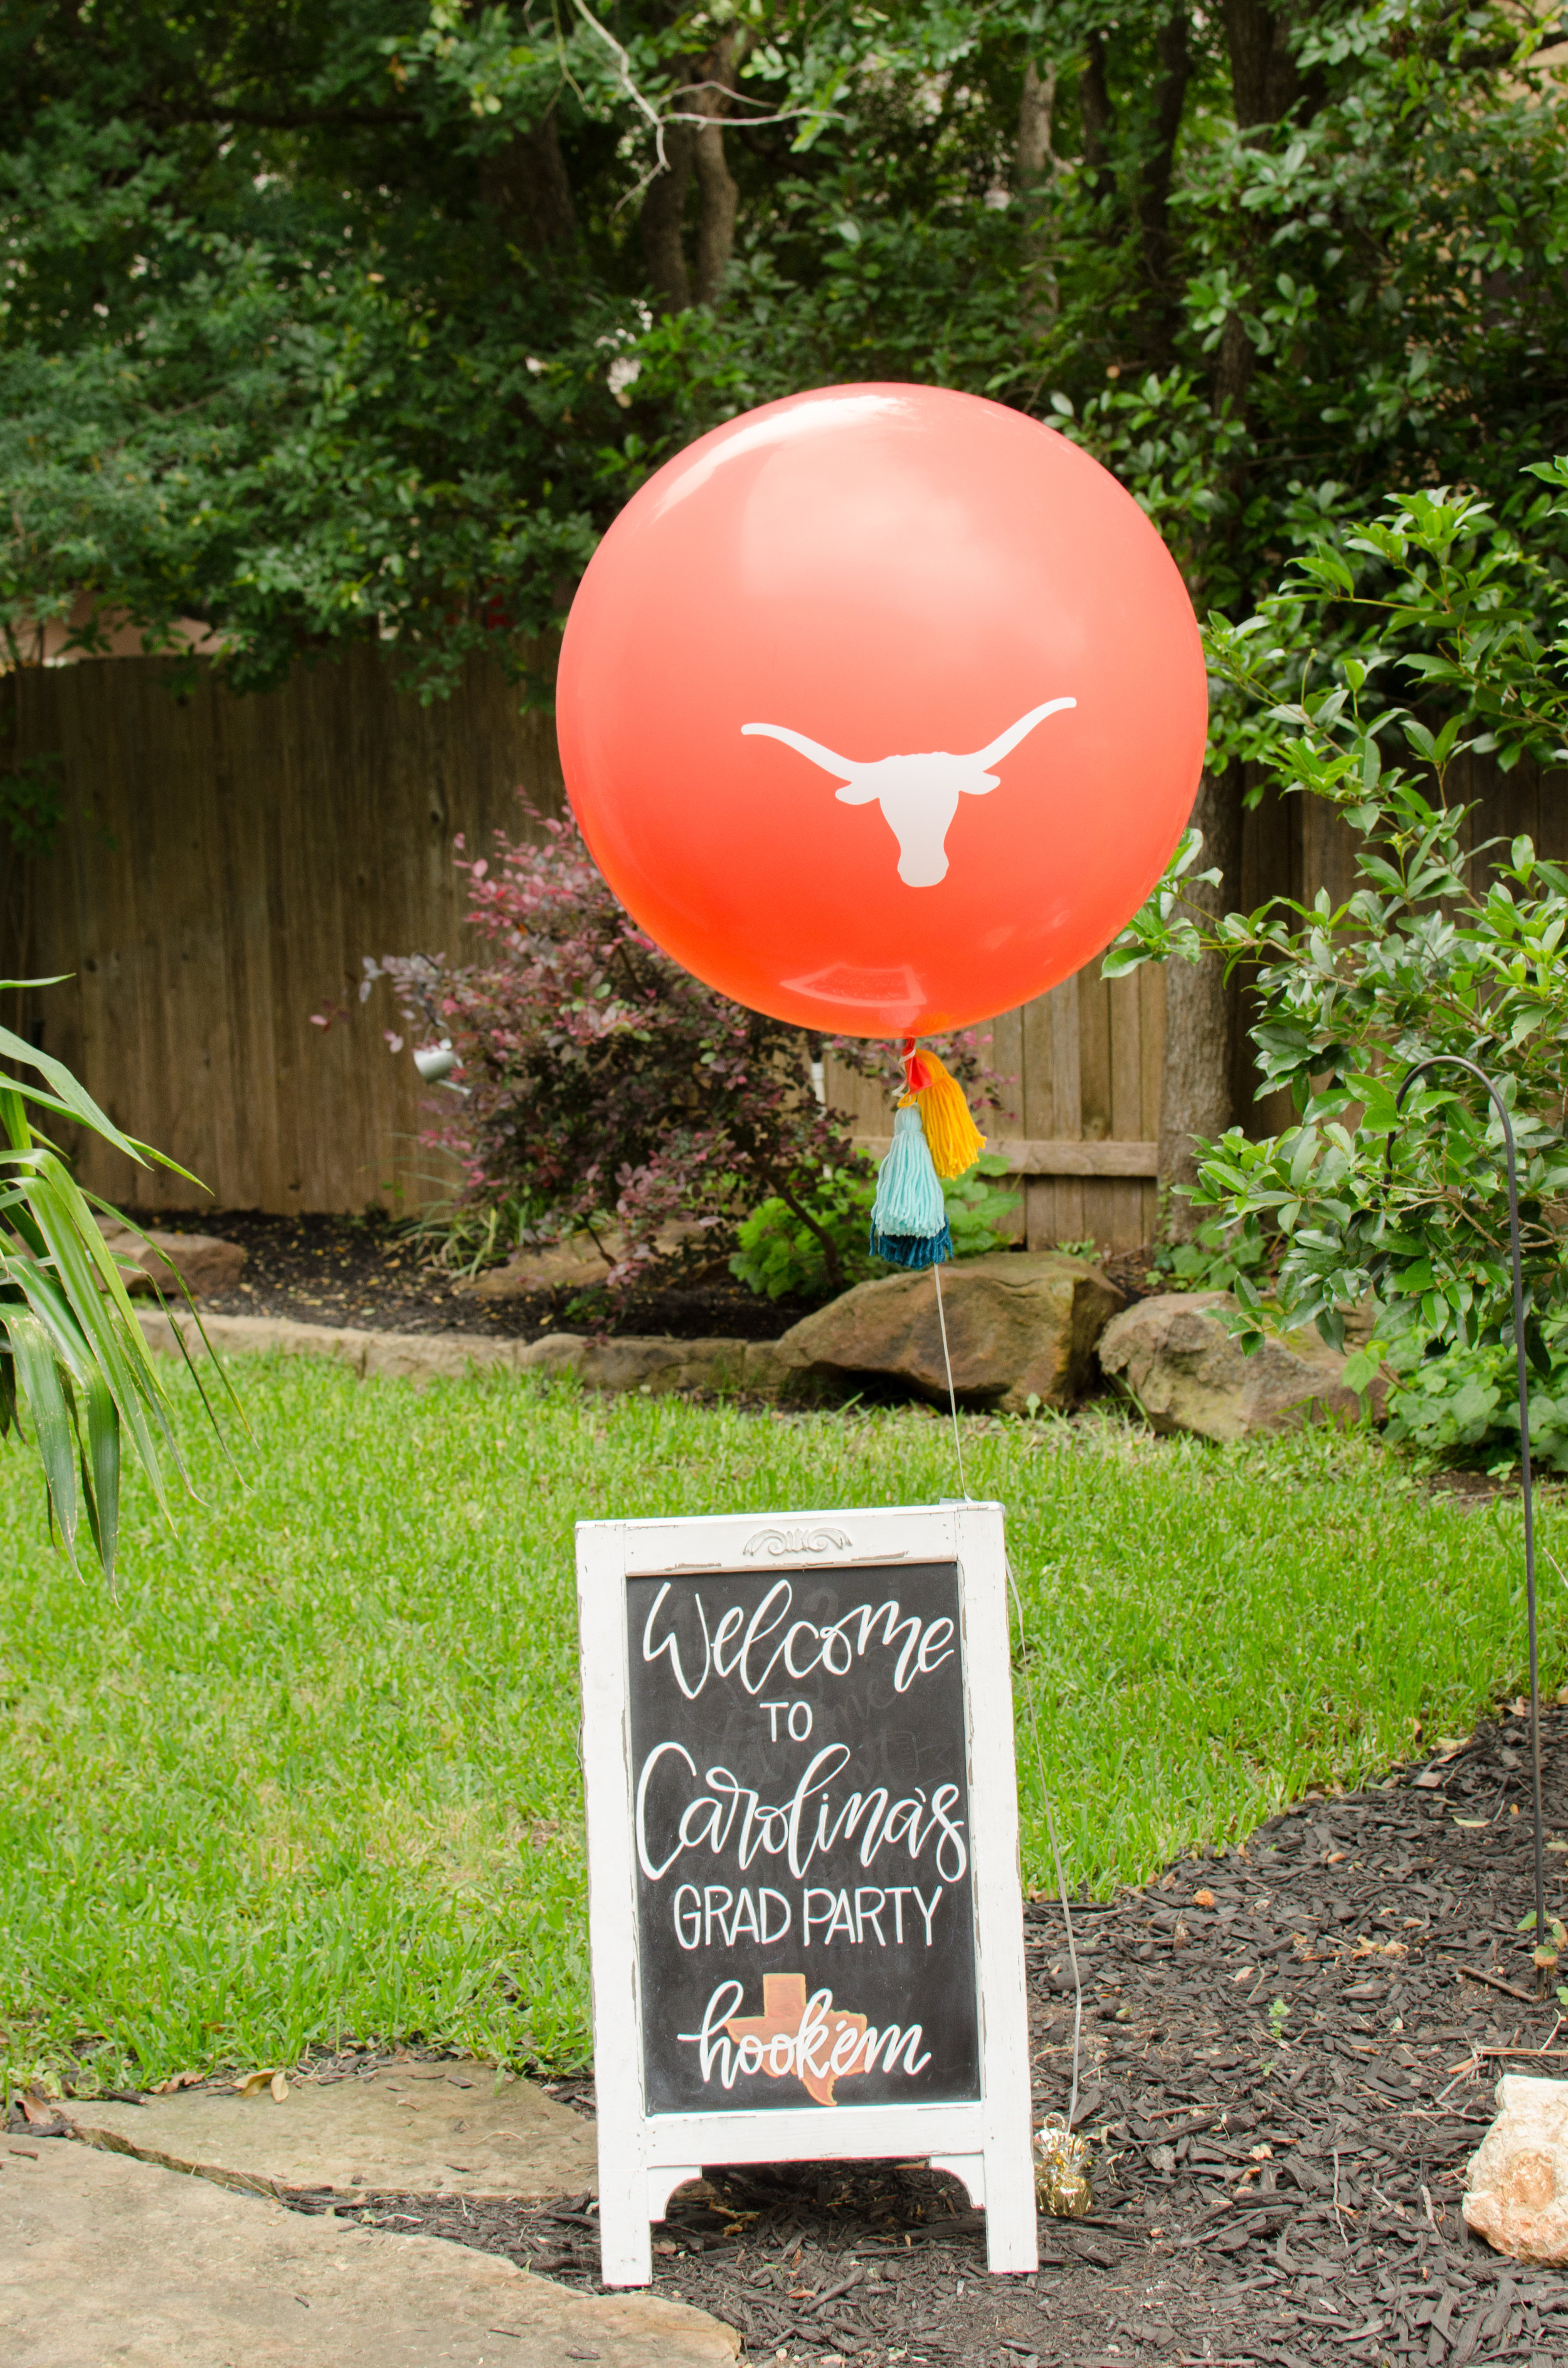 Texas Graduation Party ideas from Mint Event Design - can't forget about an oversized balloon with the Texas Longhorn on it. See more from this Grad Party on Mint Event Design www.minteventdesign.com #graduationparty #graduationpartyideas #graduation #gradparty #gradpartyideas #partyballoons